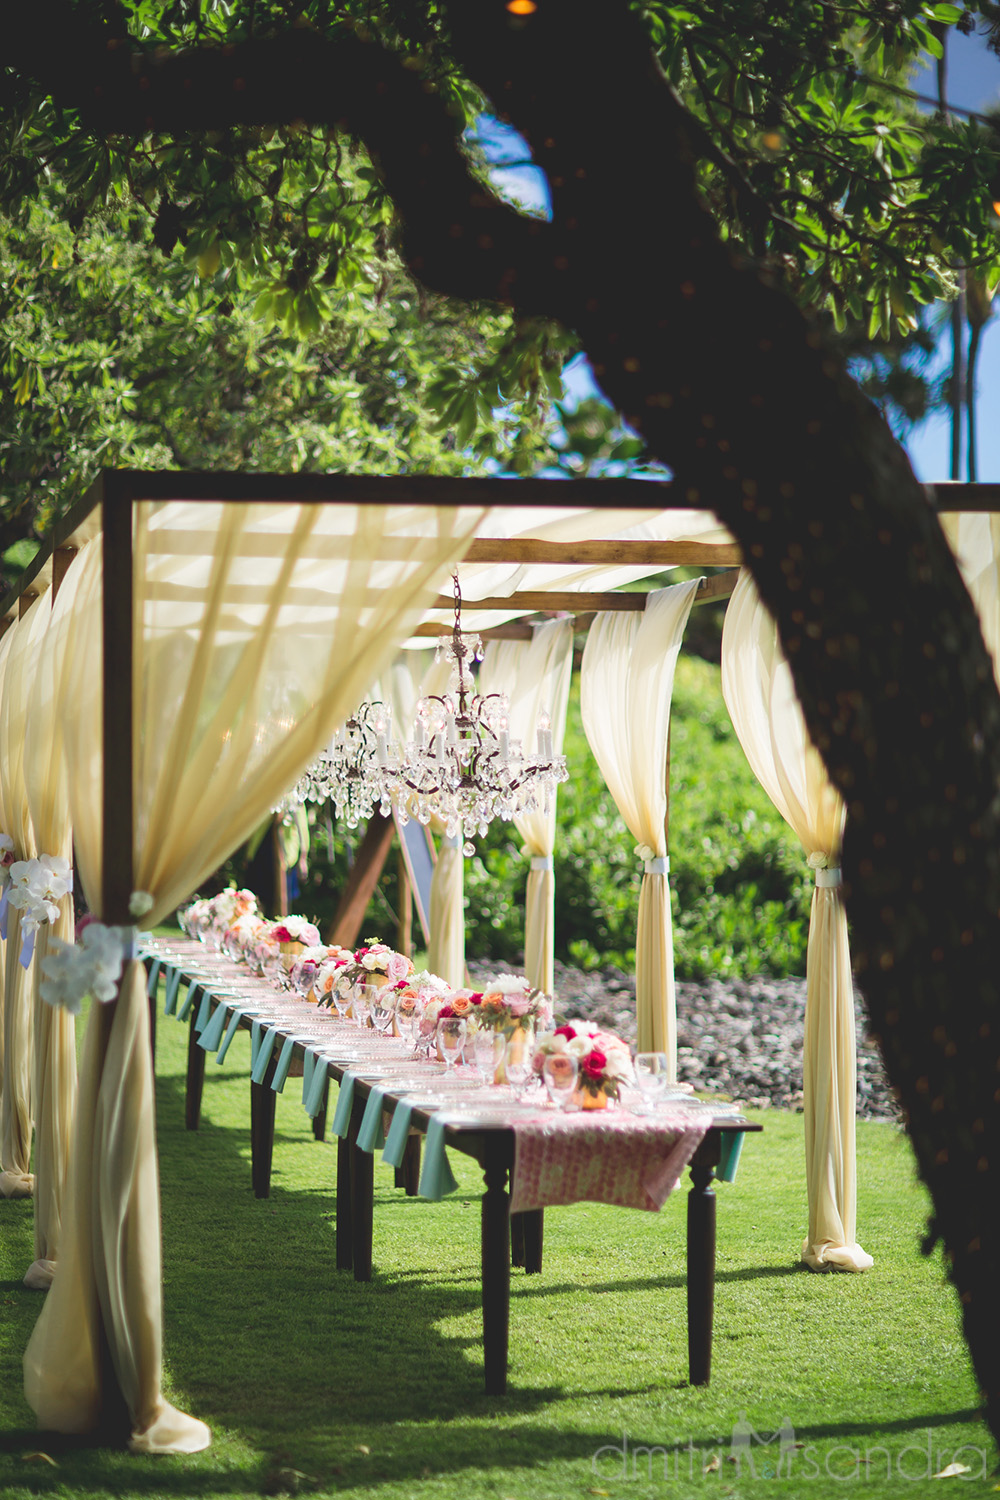 Glam outdoor wedding table by Bliss Wedding Design - photo by Dmitri and Sandra Photography